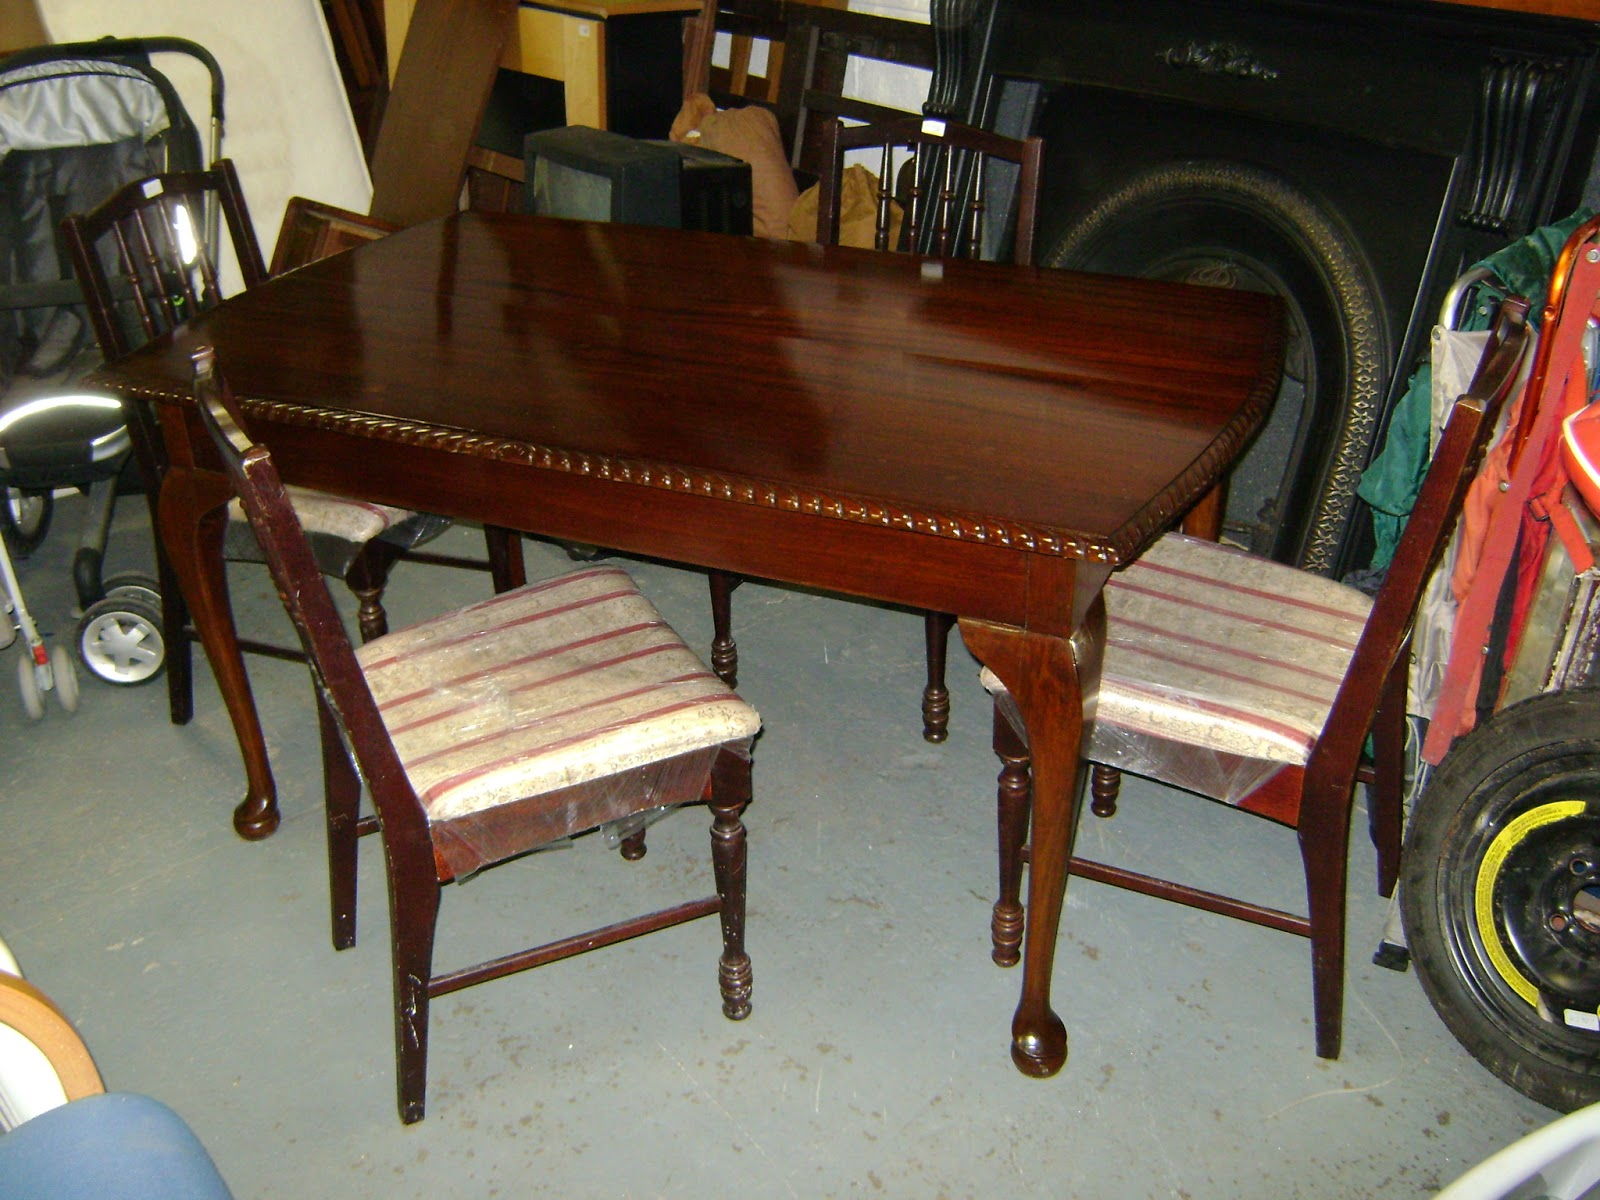 Very Best Deccie's Done Deal Second Hand Furniture & House Clearances 1600 x 1200 · 291 kB · jpeg